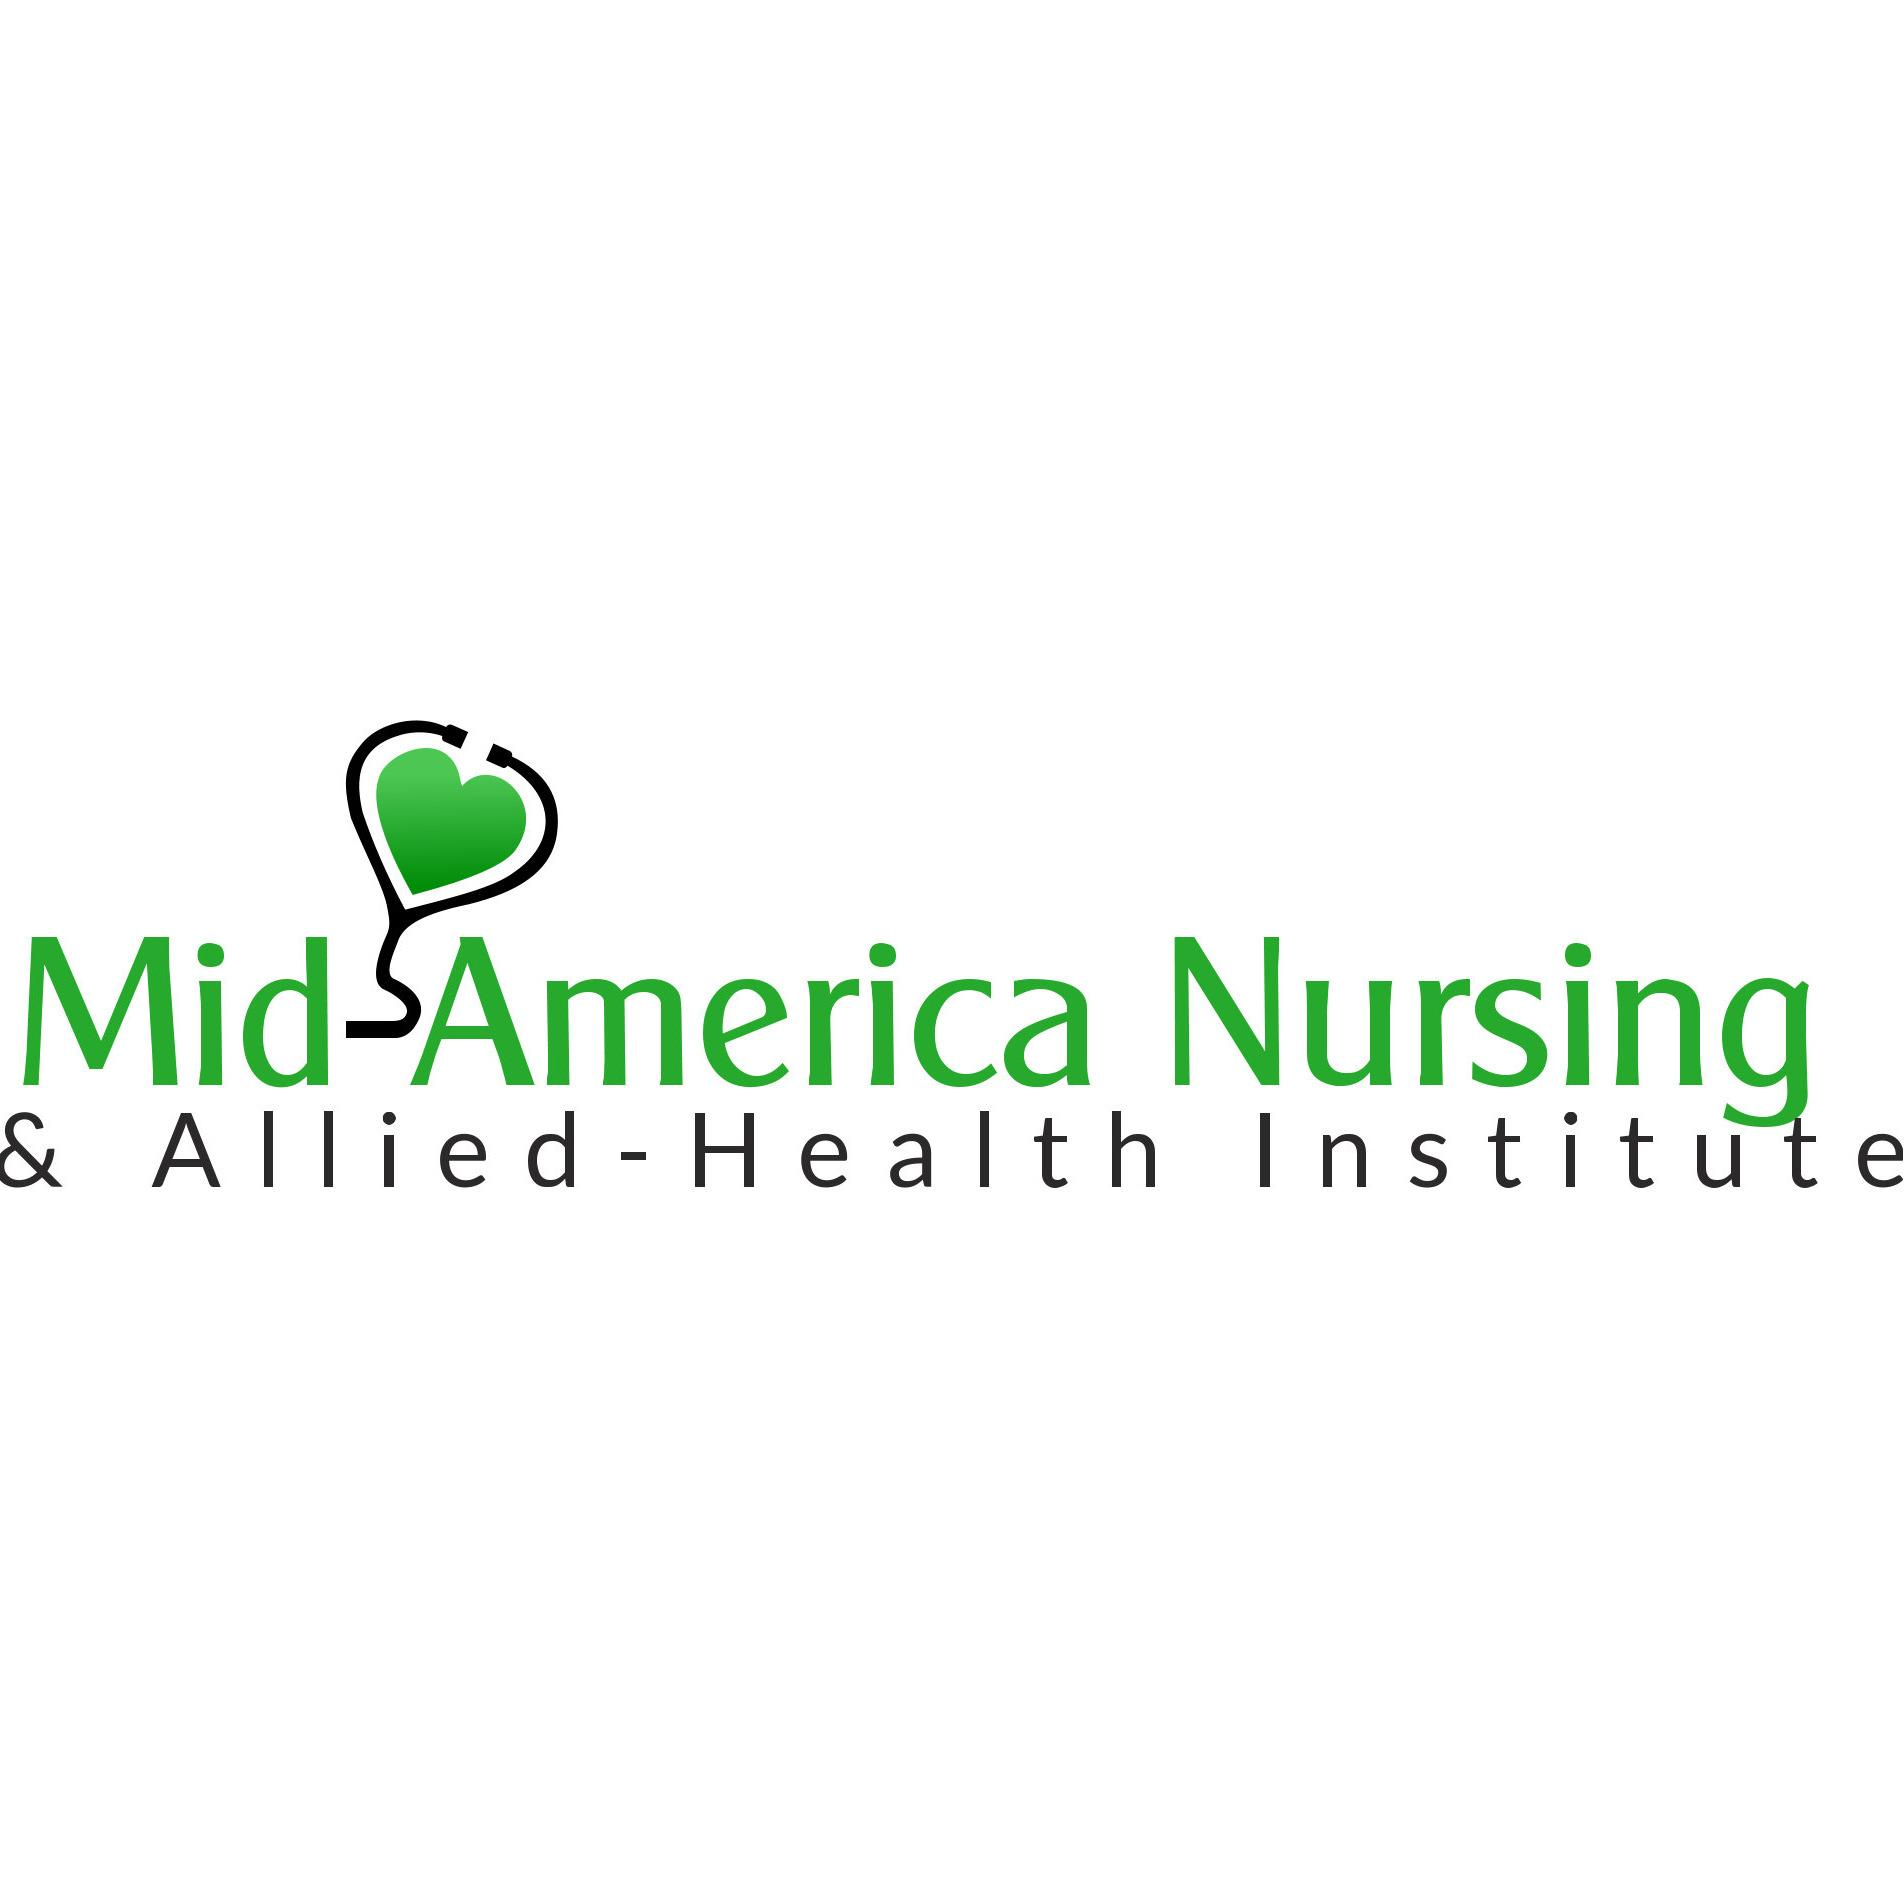 Mid-America Nursing & Allied-Health Institute